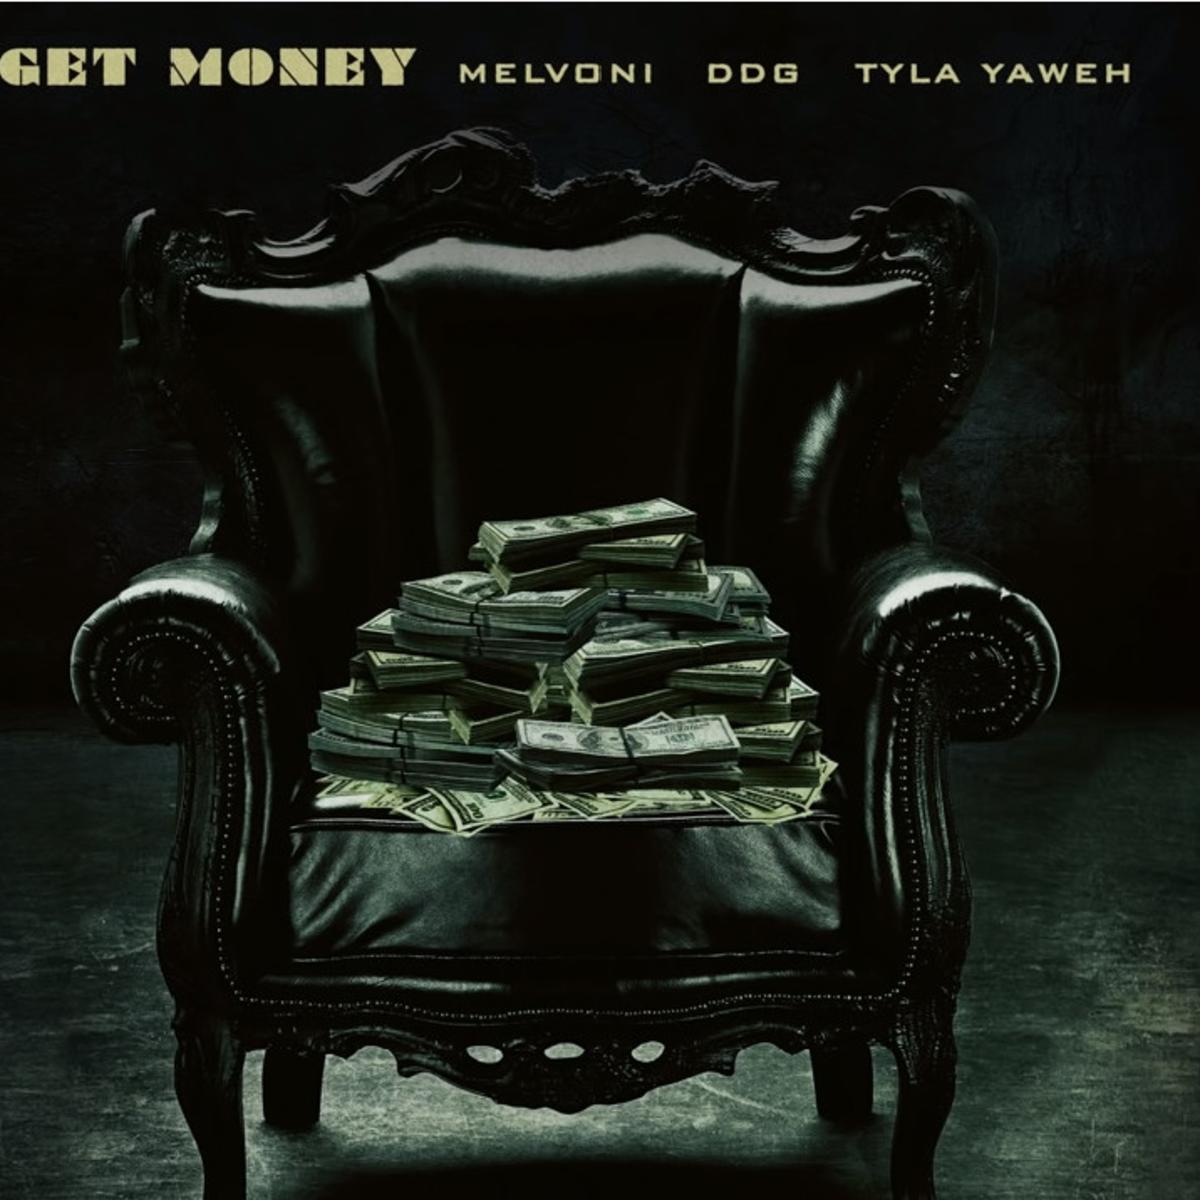 DOWNLOAD MP3: Melvoni Ft. DDG & Tyla Yaweh – Get Money